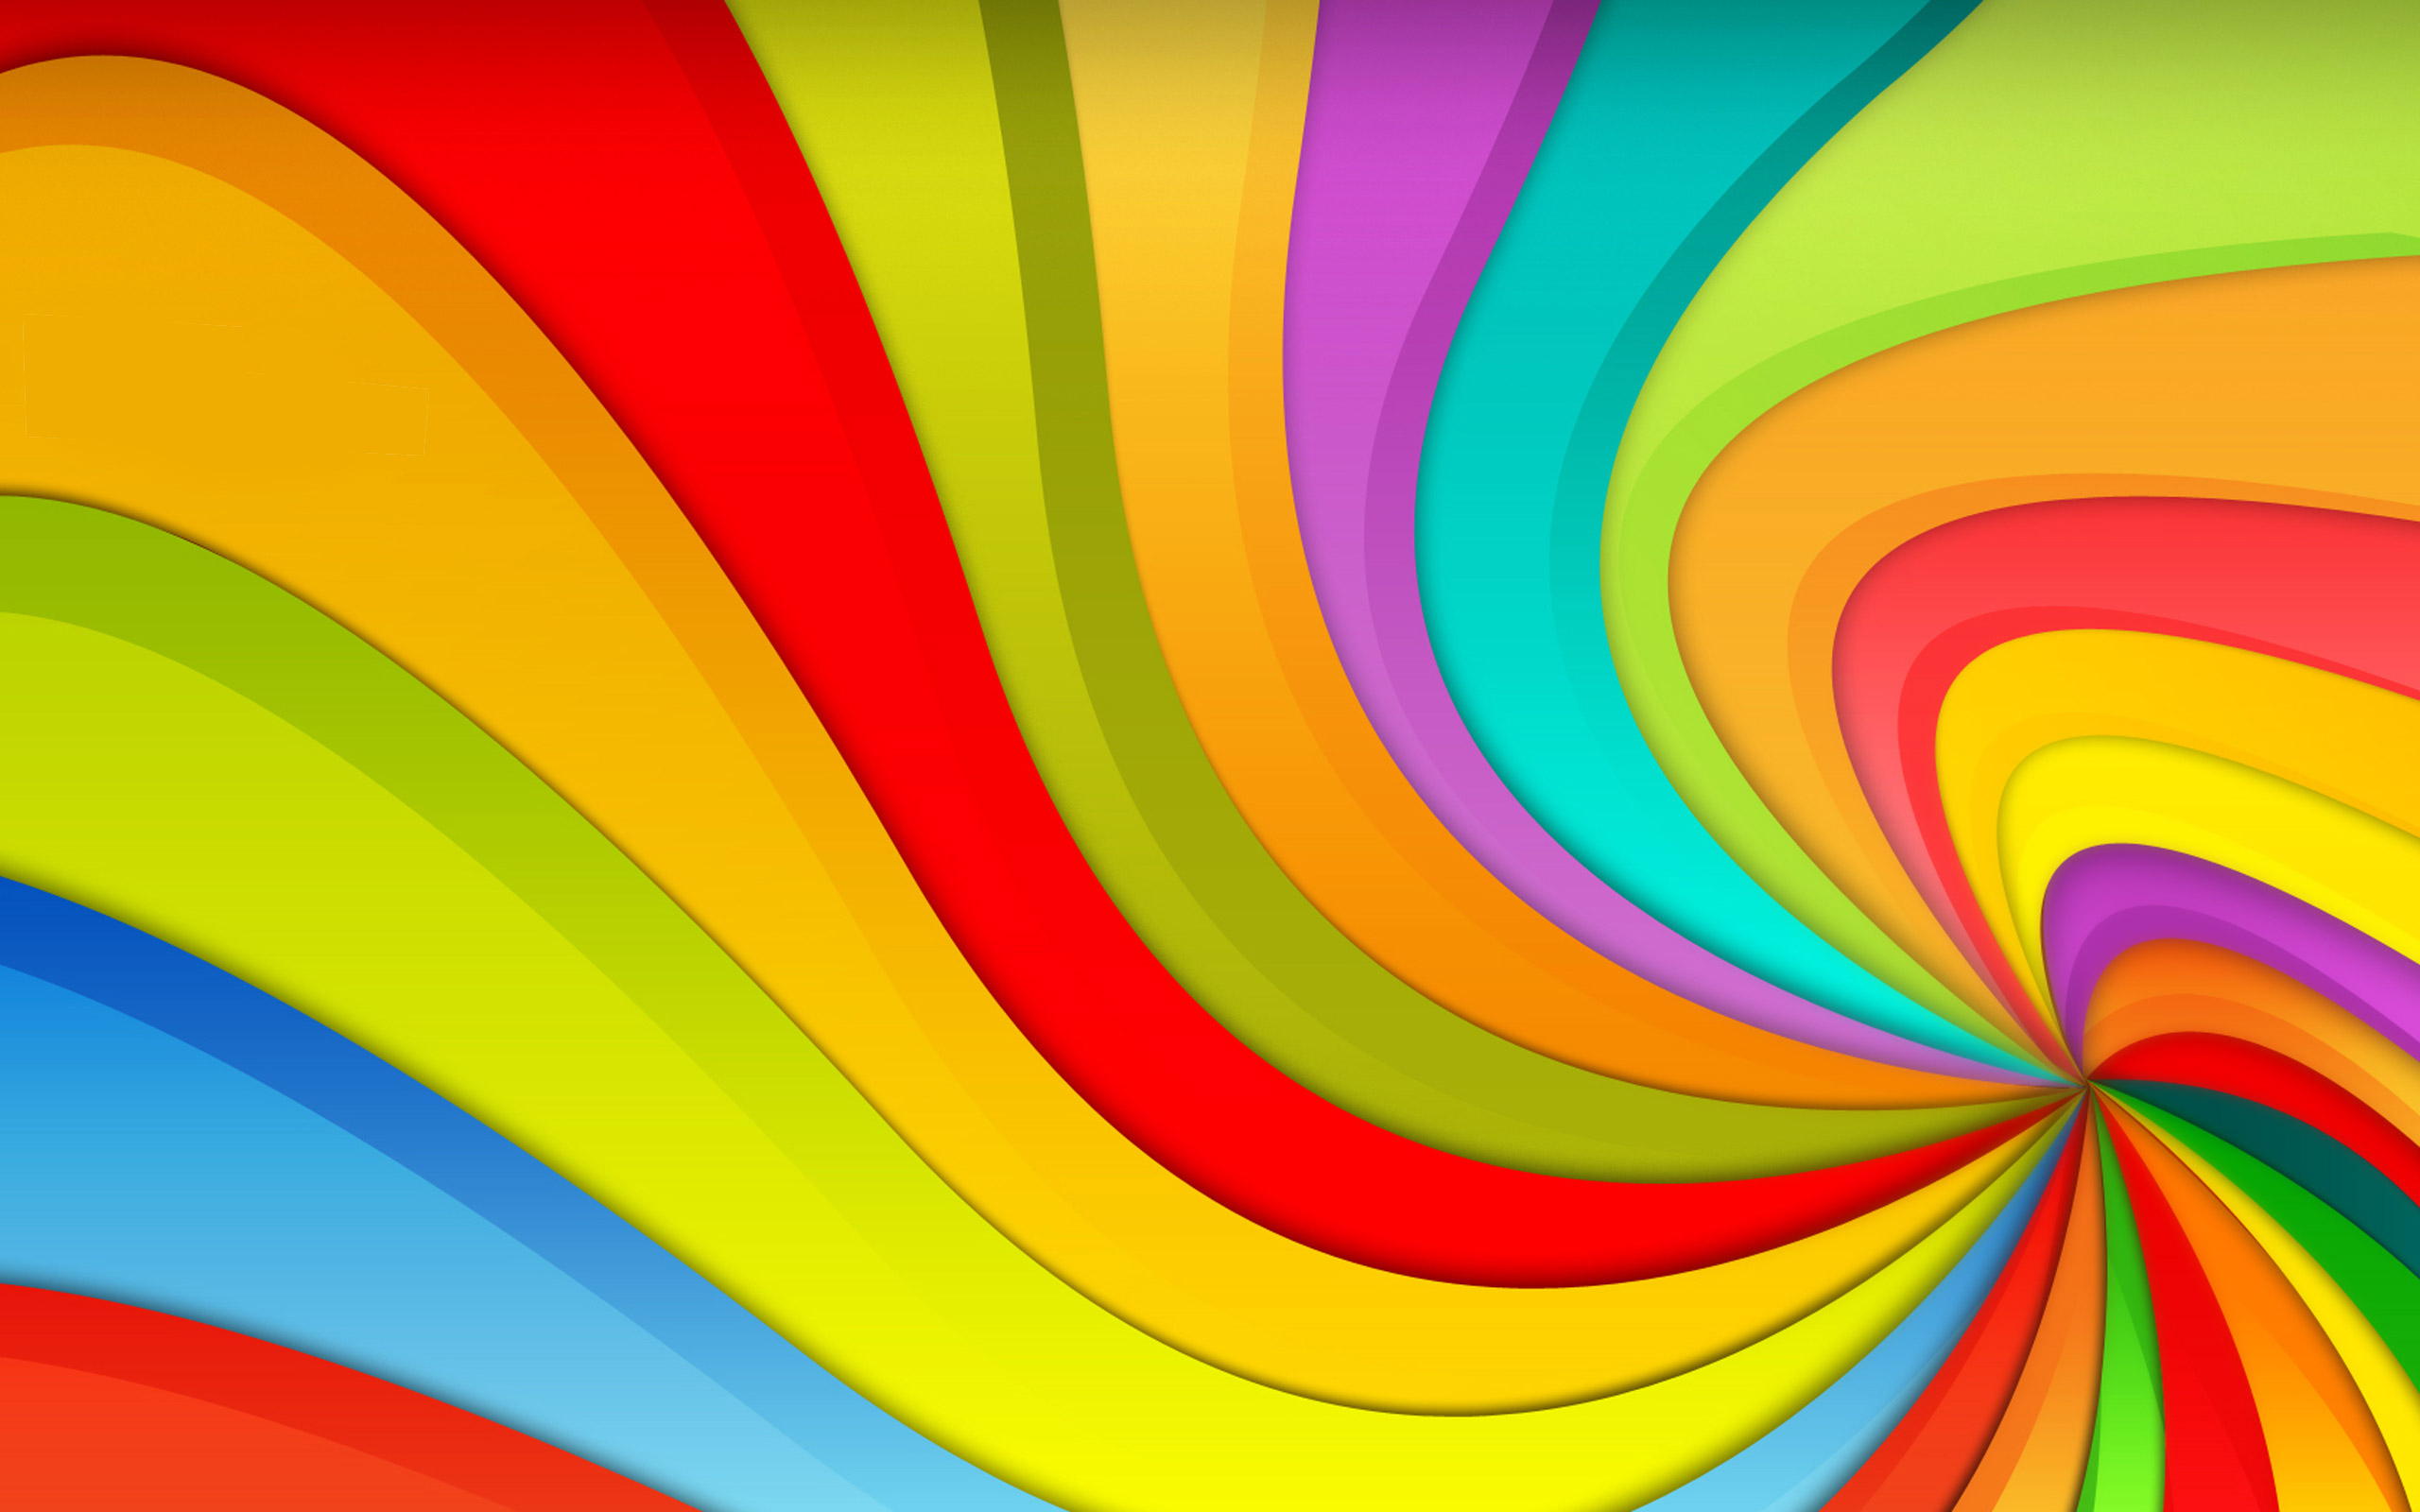 Rainbow WallpapersBright Rainbow Wallpaper